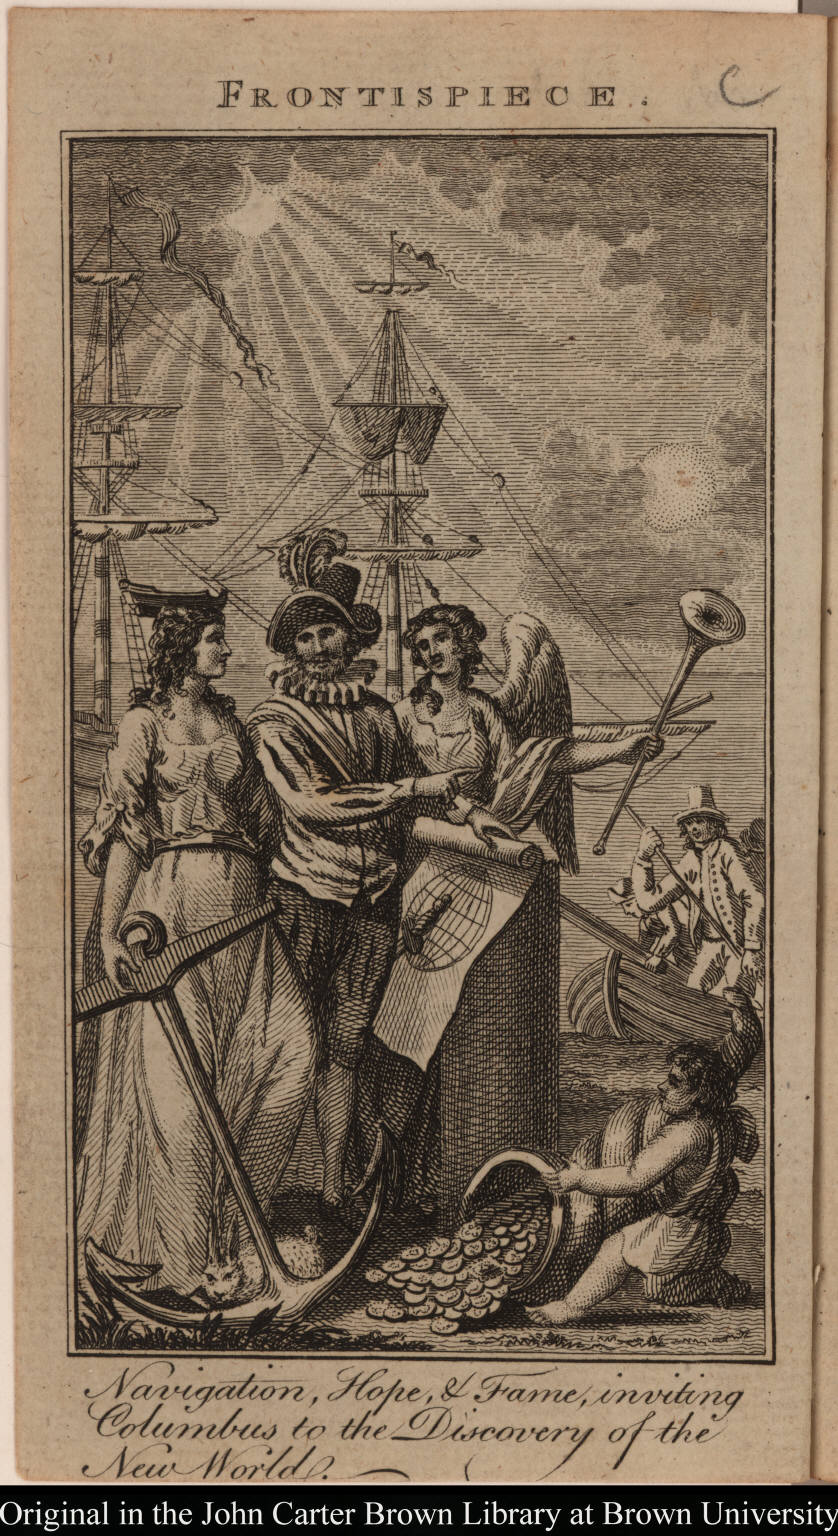 Navigation, Hope, & Fame, inviting Columbus to the Discovery of the New World.